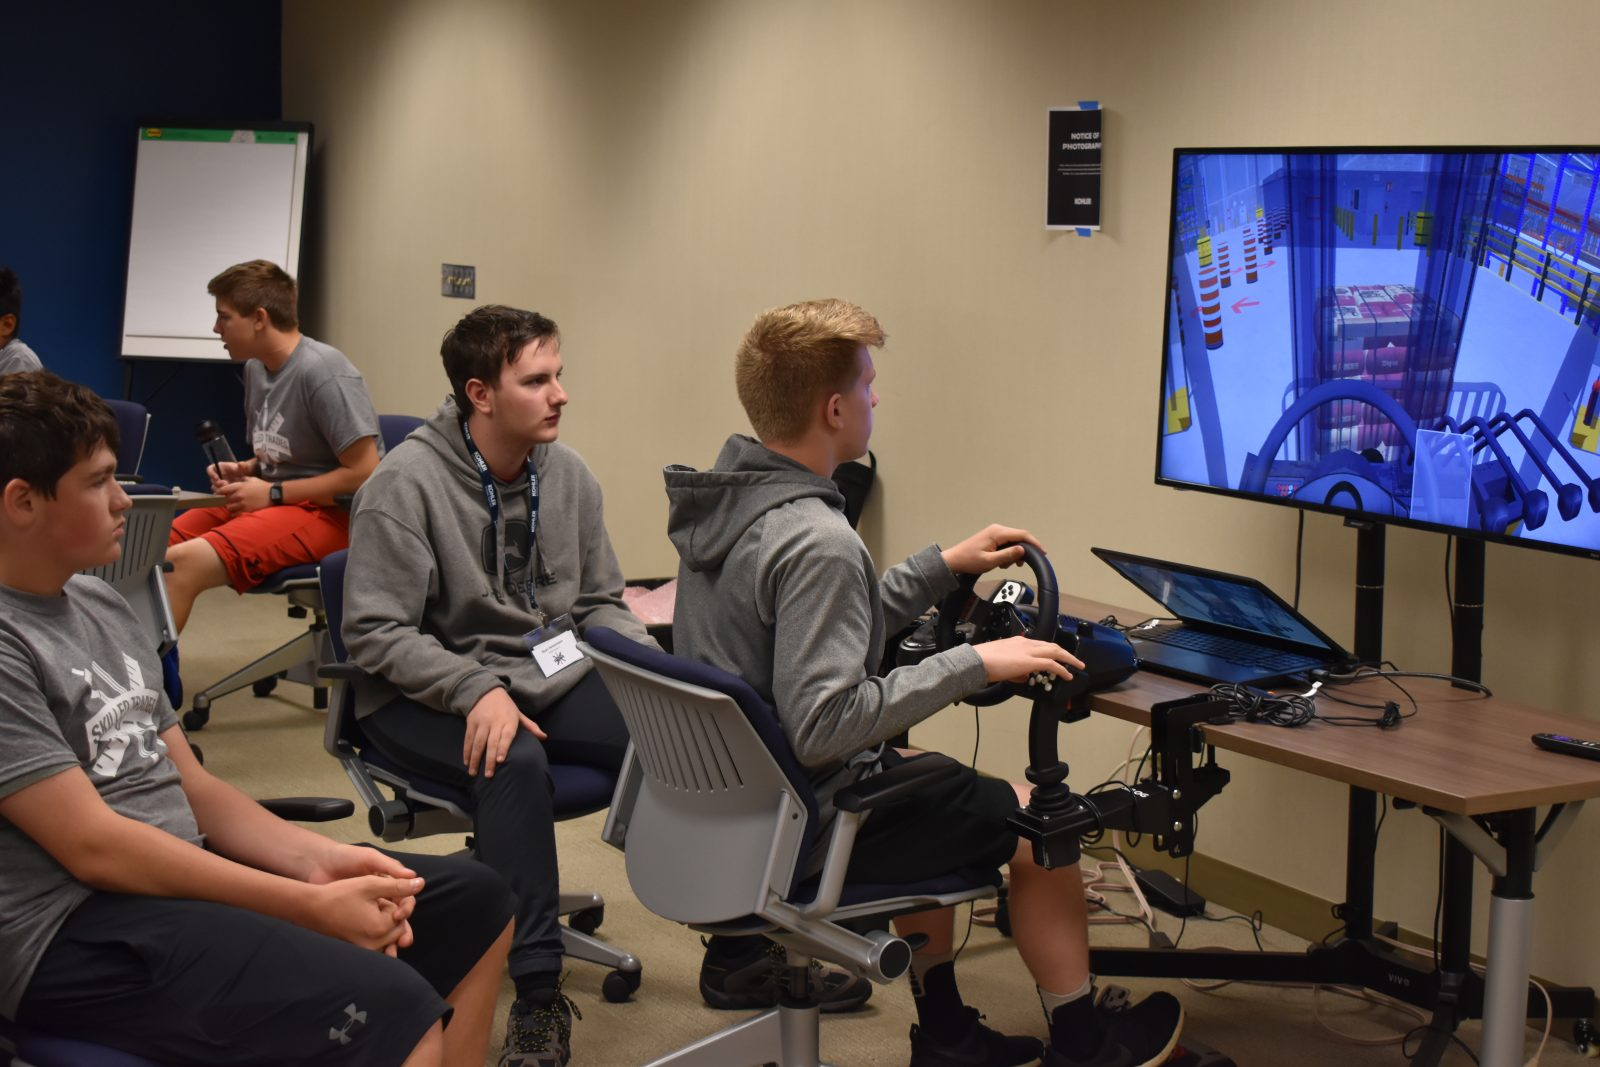 Students try out the Simlog forklift simulator at the Kohler Skilled Trades Camp